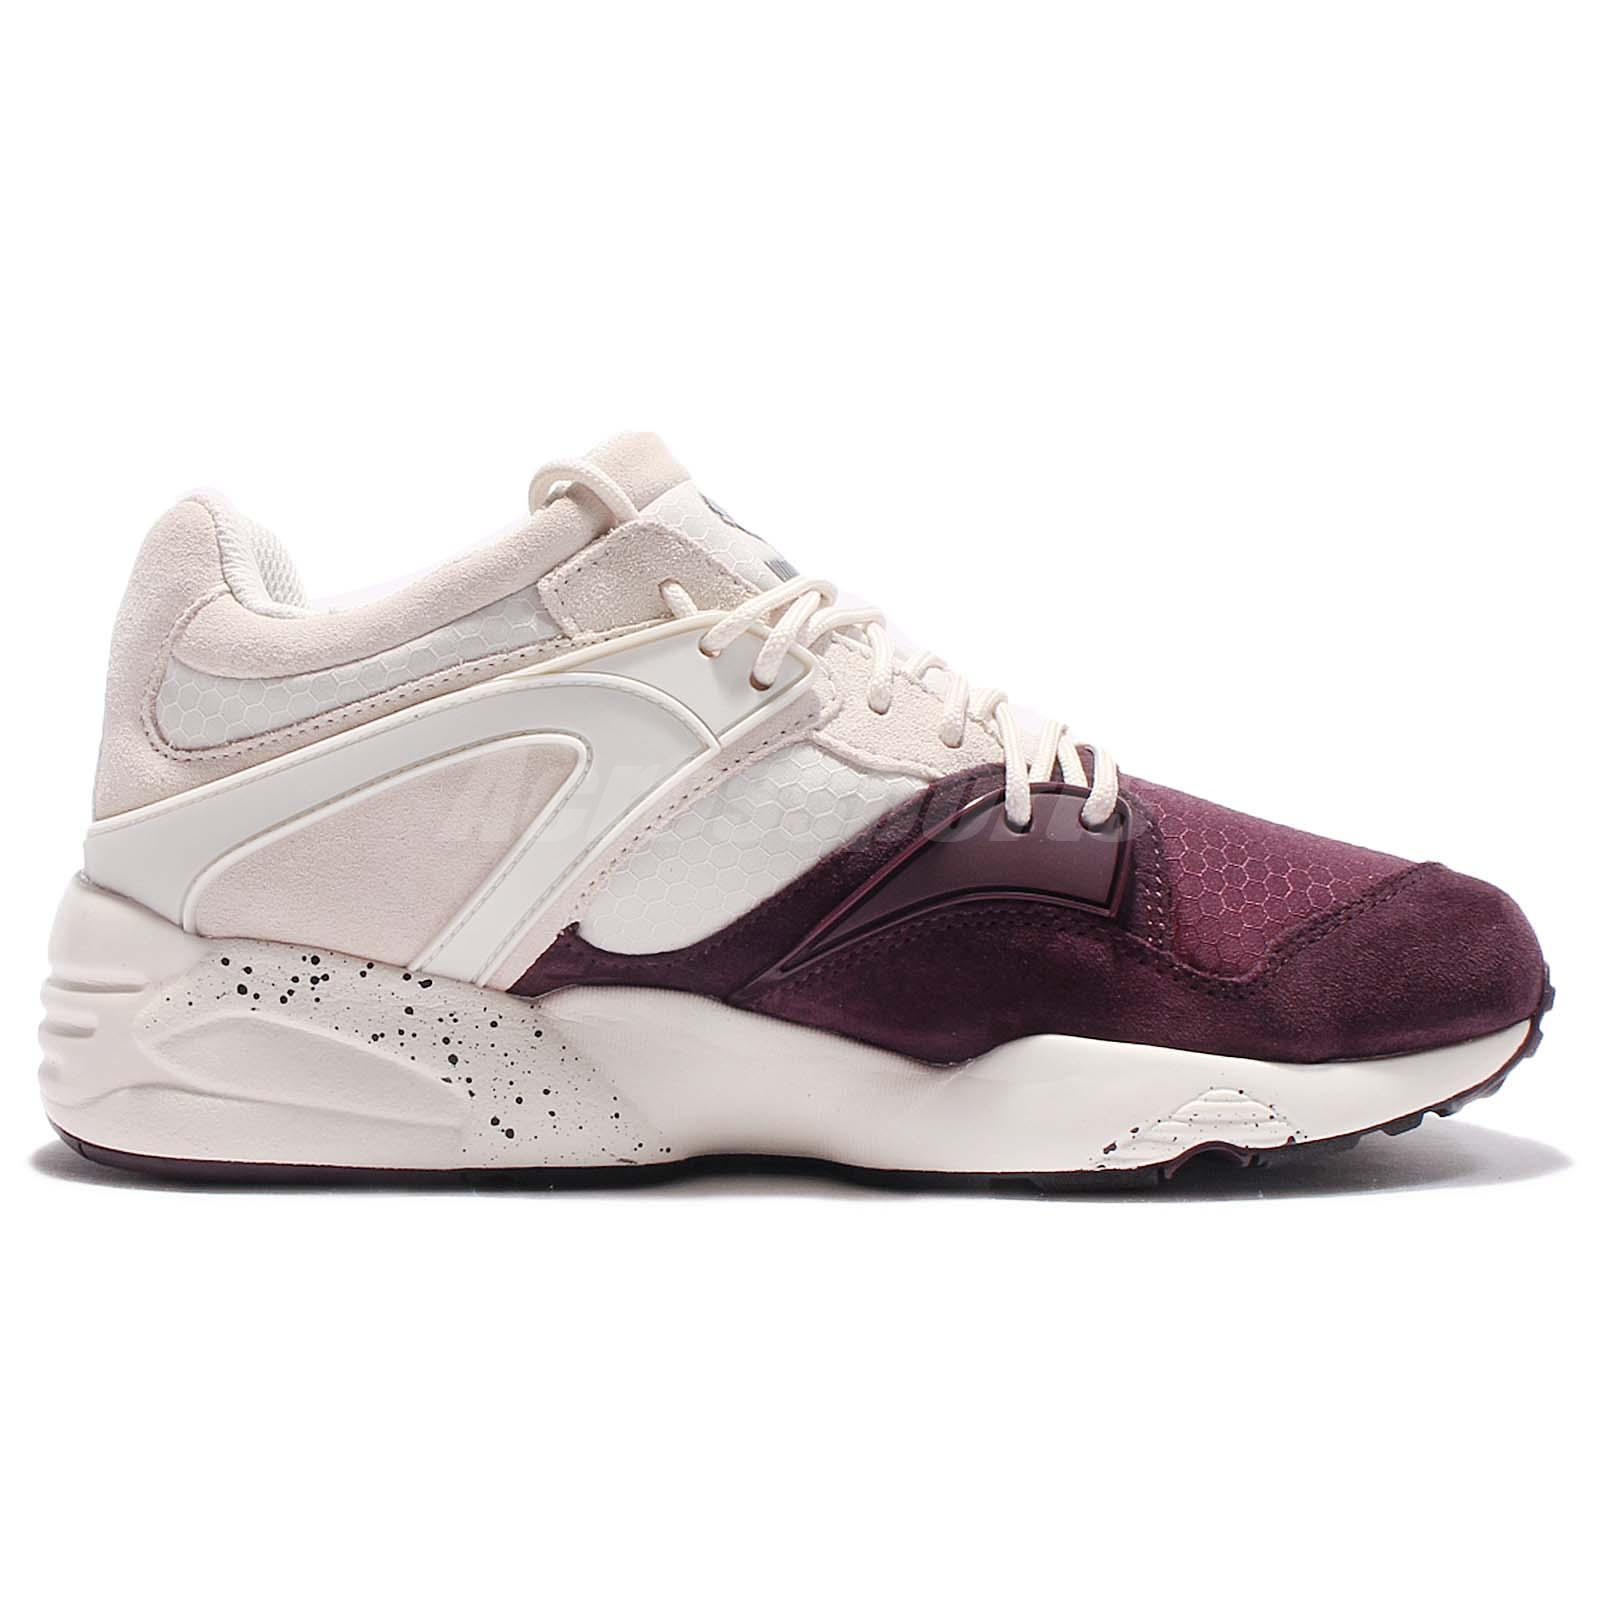 03 White Running Puma Trainers Trinomic Blaze Winter 361341 Tech Shoe Détails Men Purple Sur xBErWQdoeC